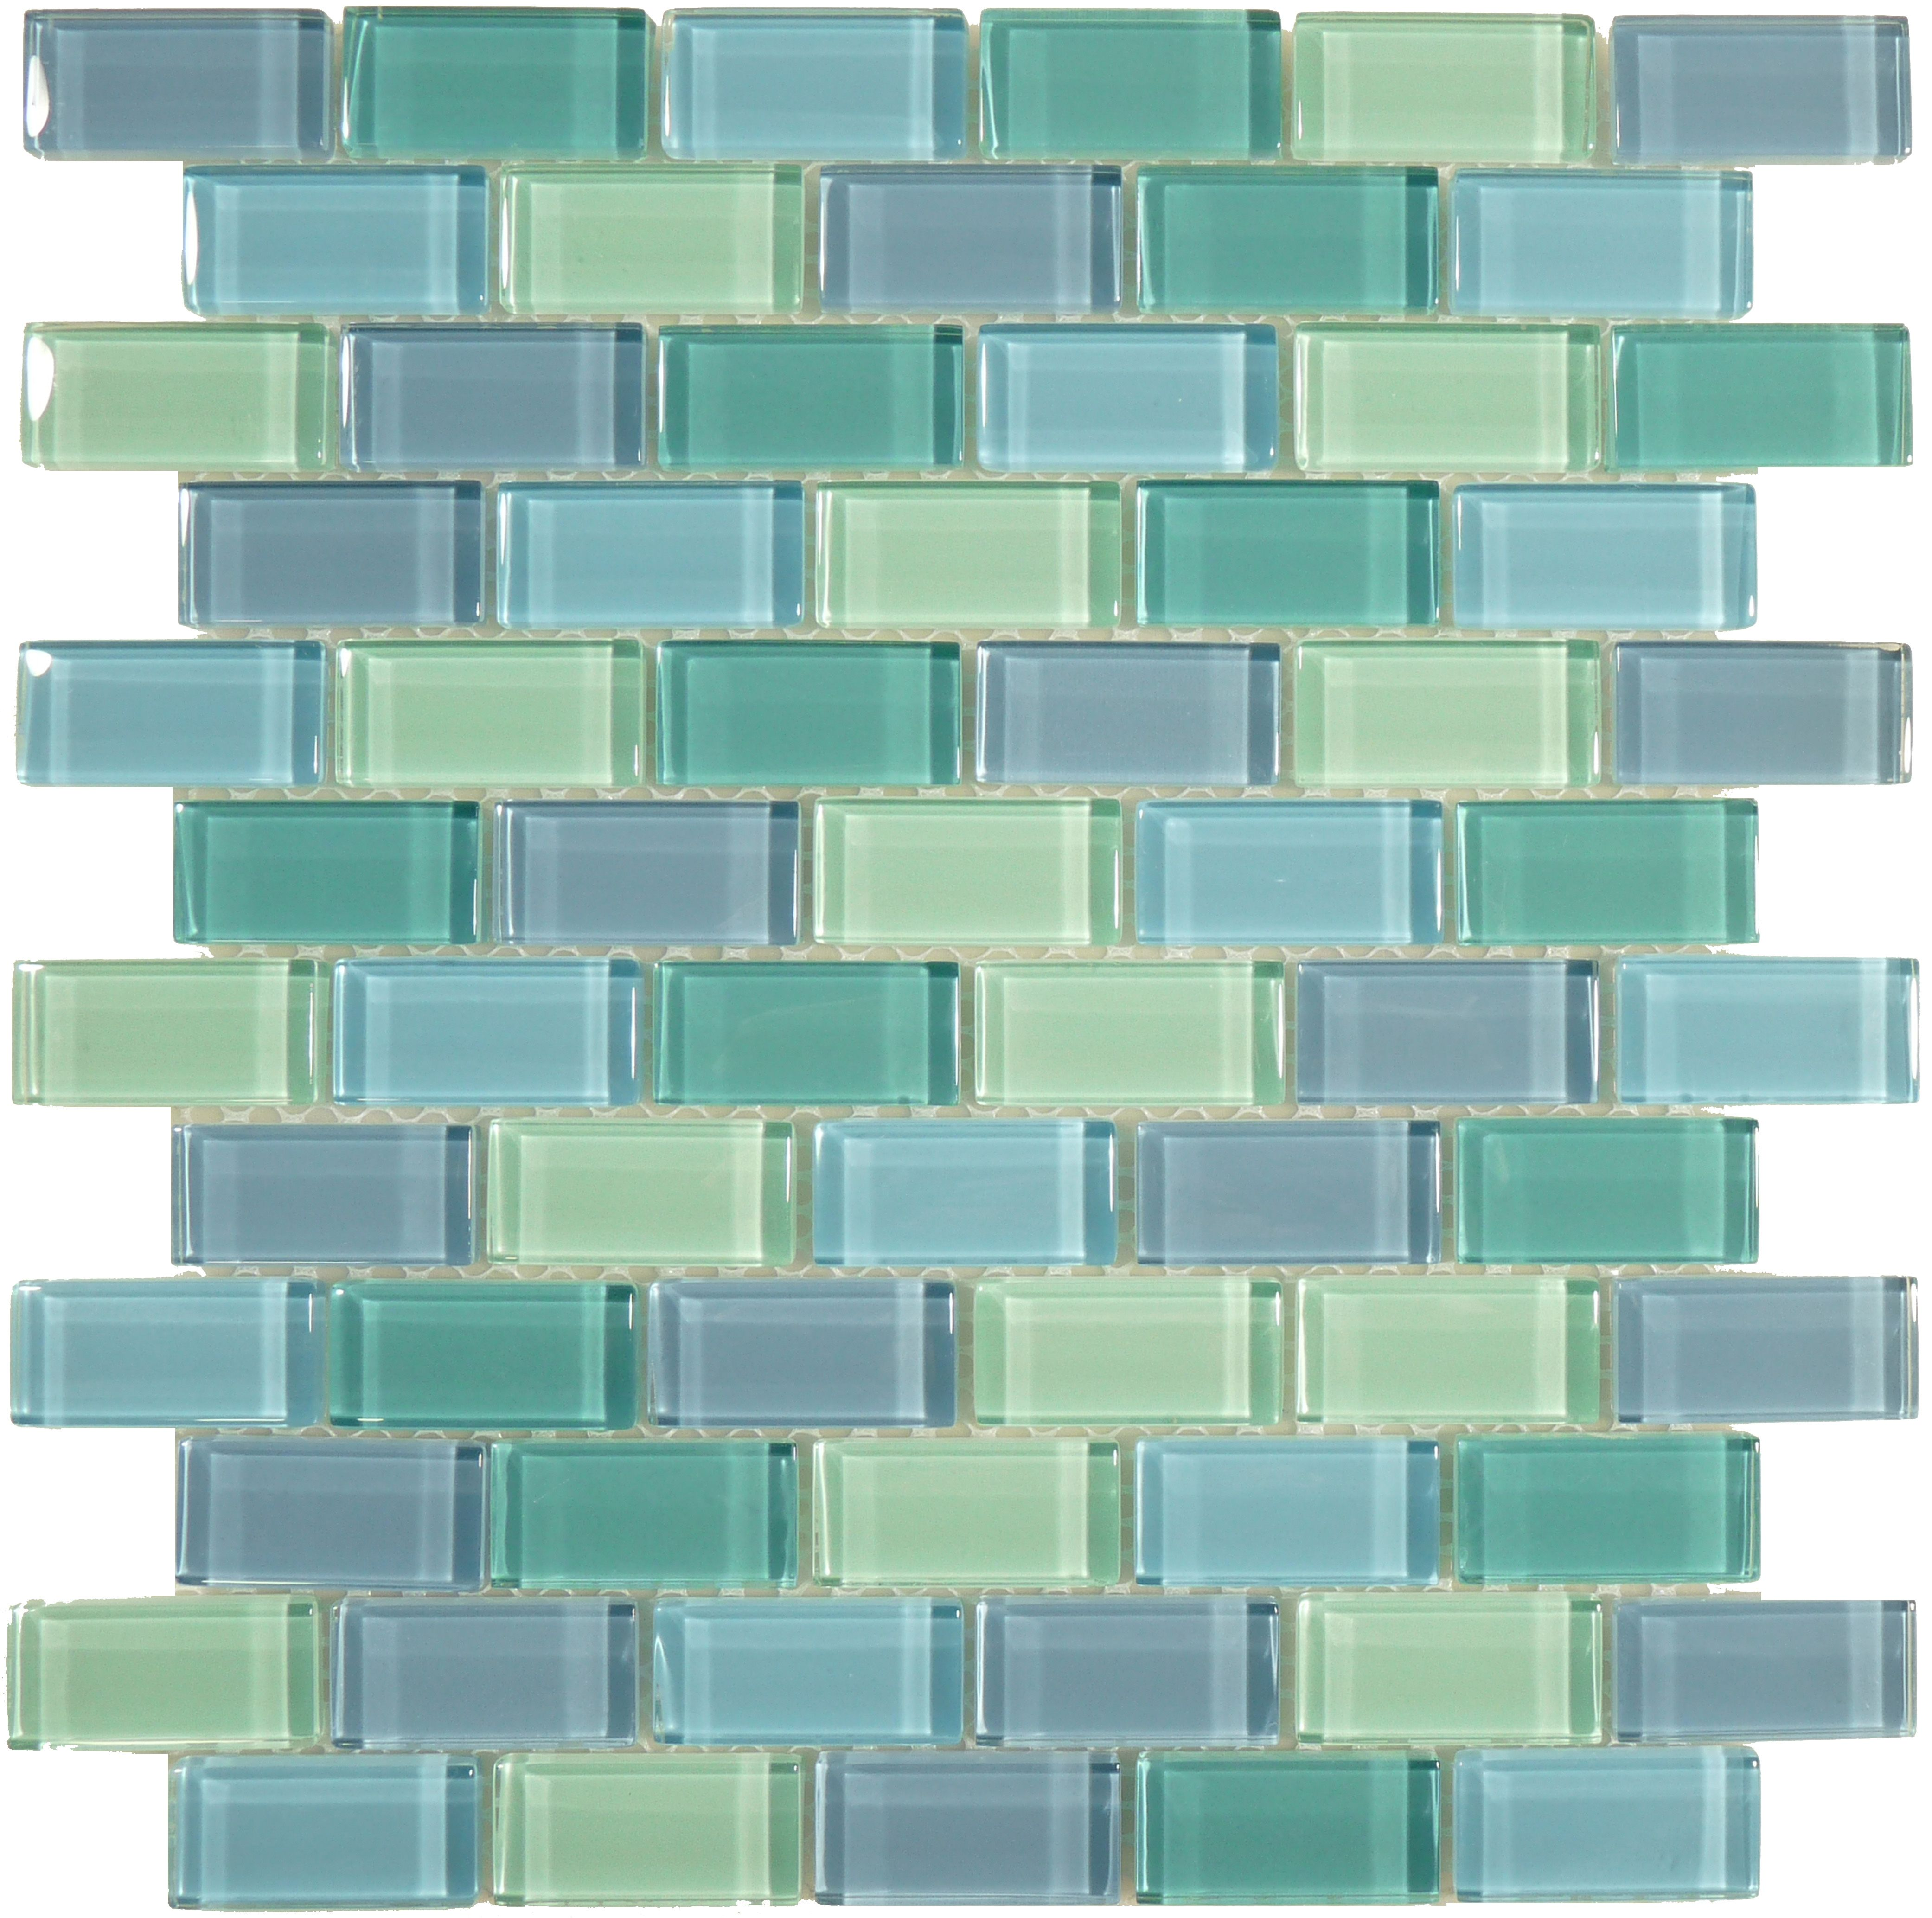 Ocean Pool Mosaic Crystile Blends 1 X 2 Turquoise Blue Blend Glossy Green Glass Green Mosaic Tiles Mosaic Pool Glass Pool Tile